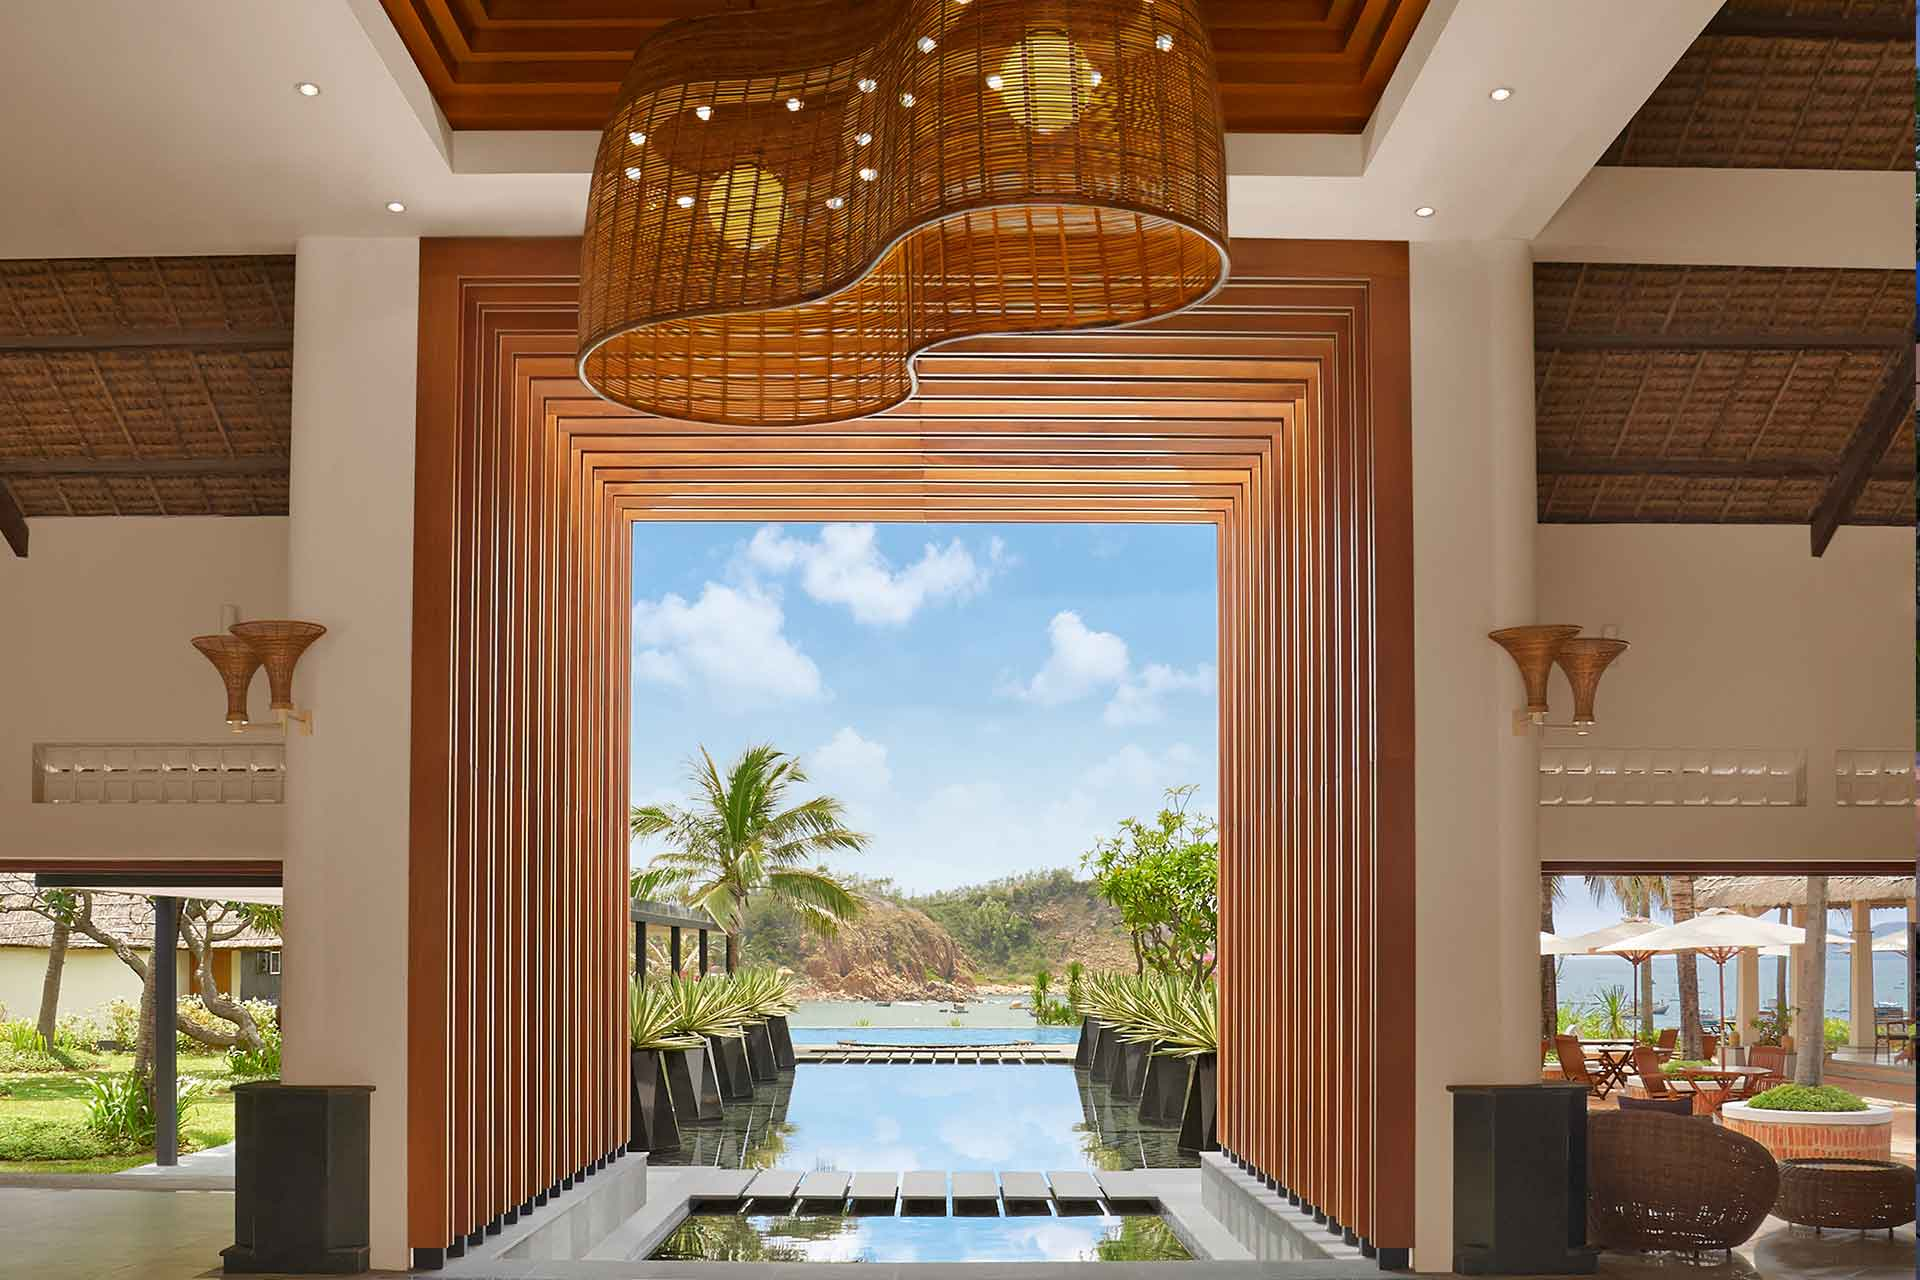 Lobby area of AVANI Quy Nhon Resort